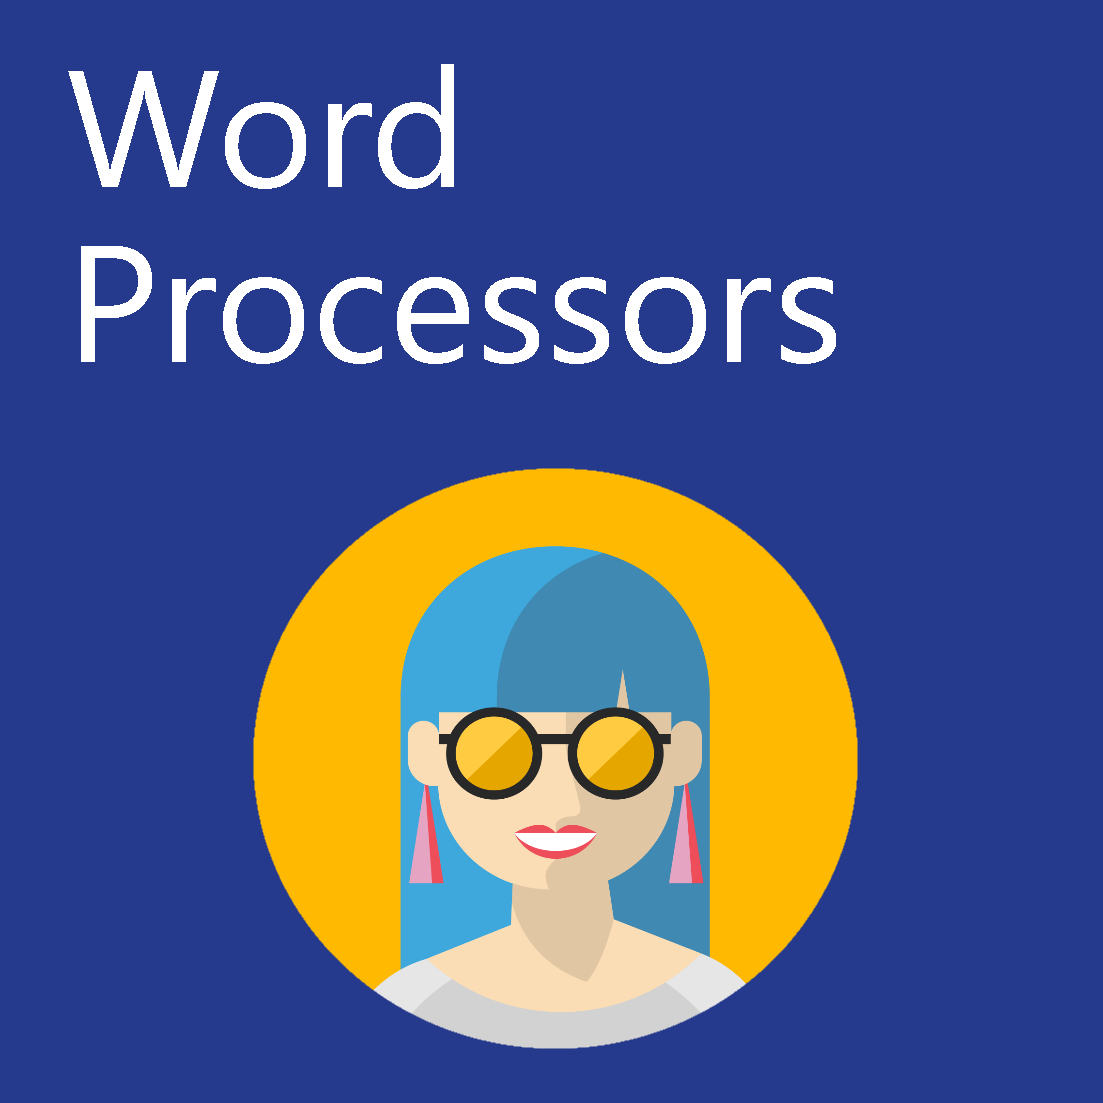 Module 3: Introduction to Word Processors